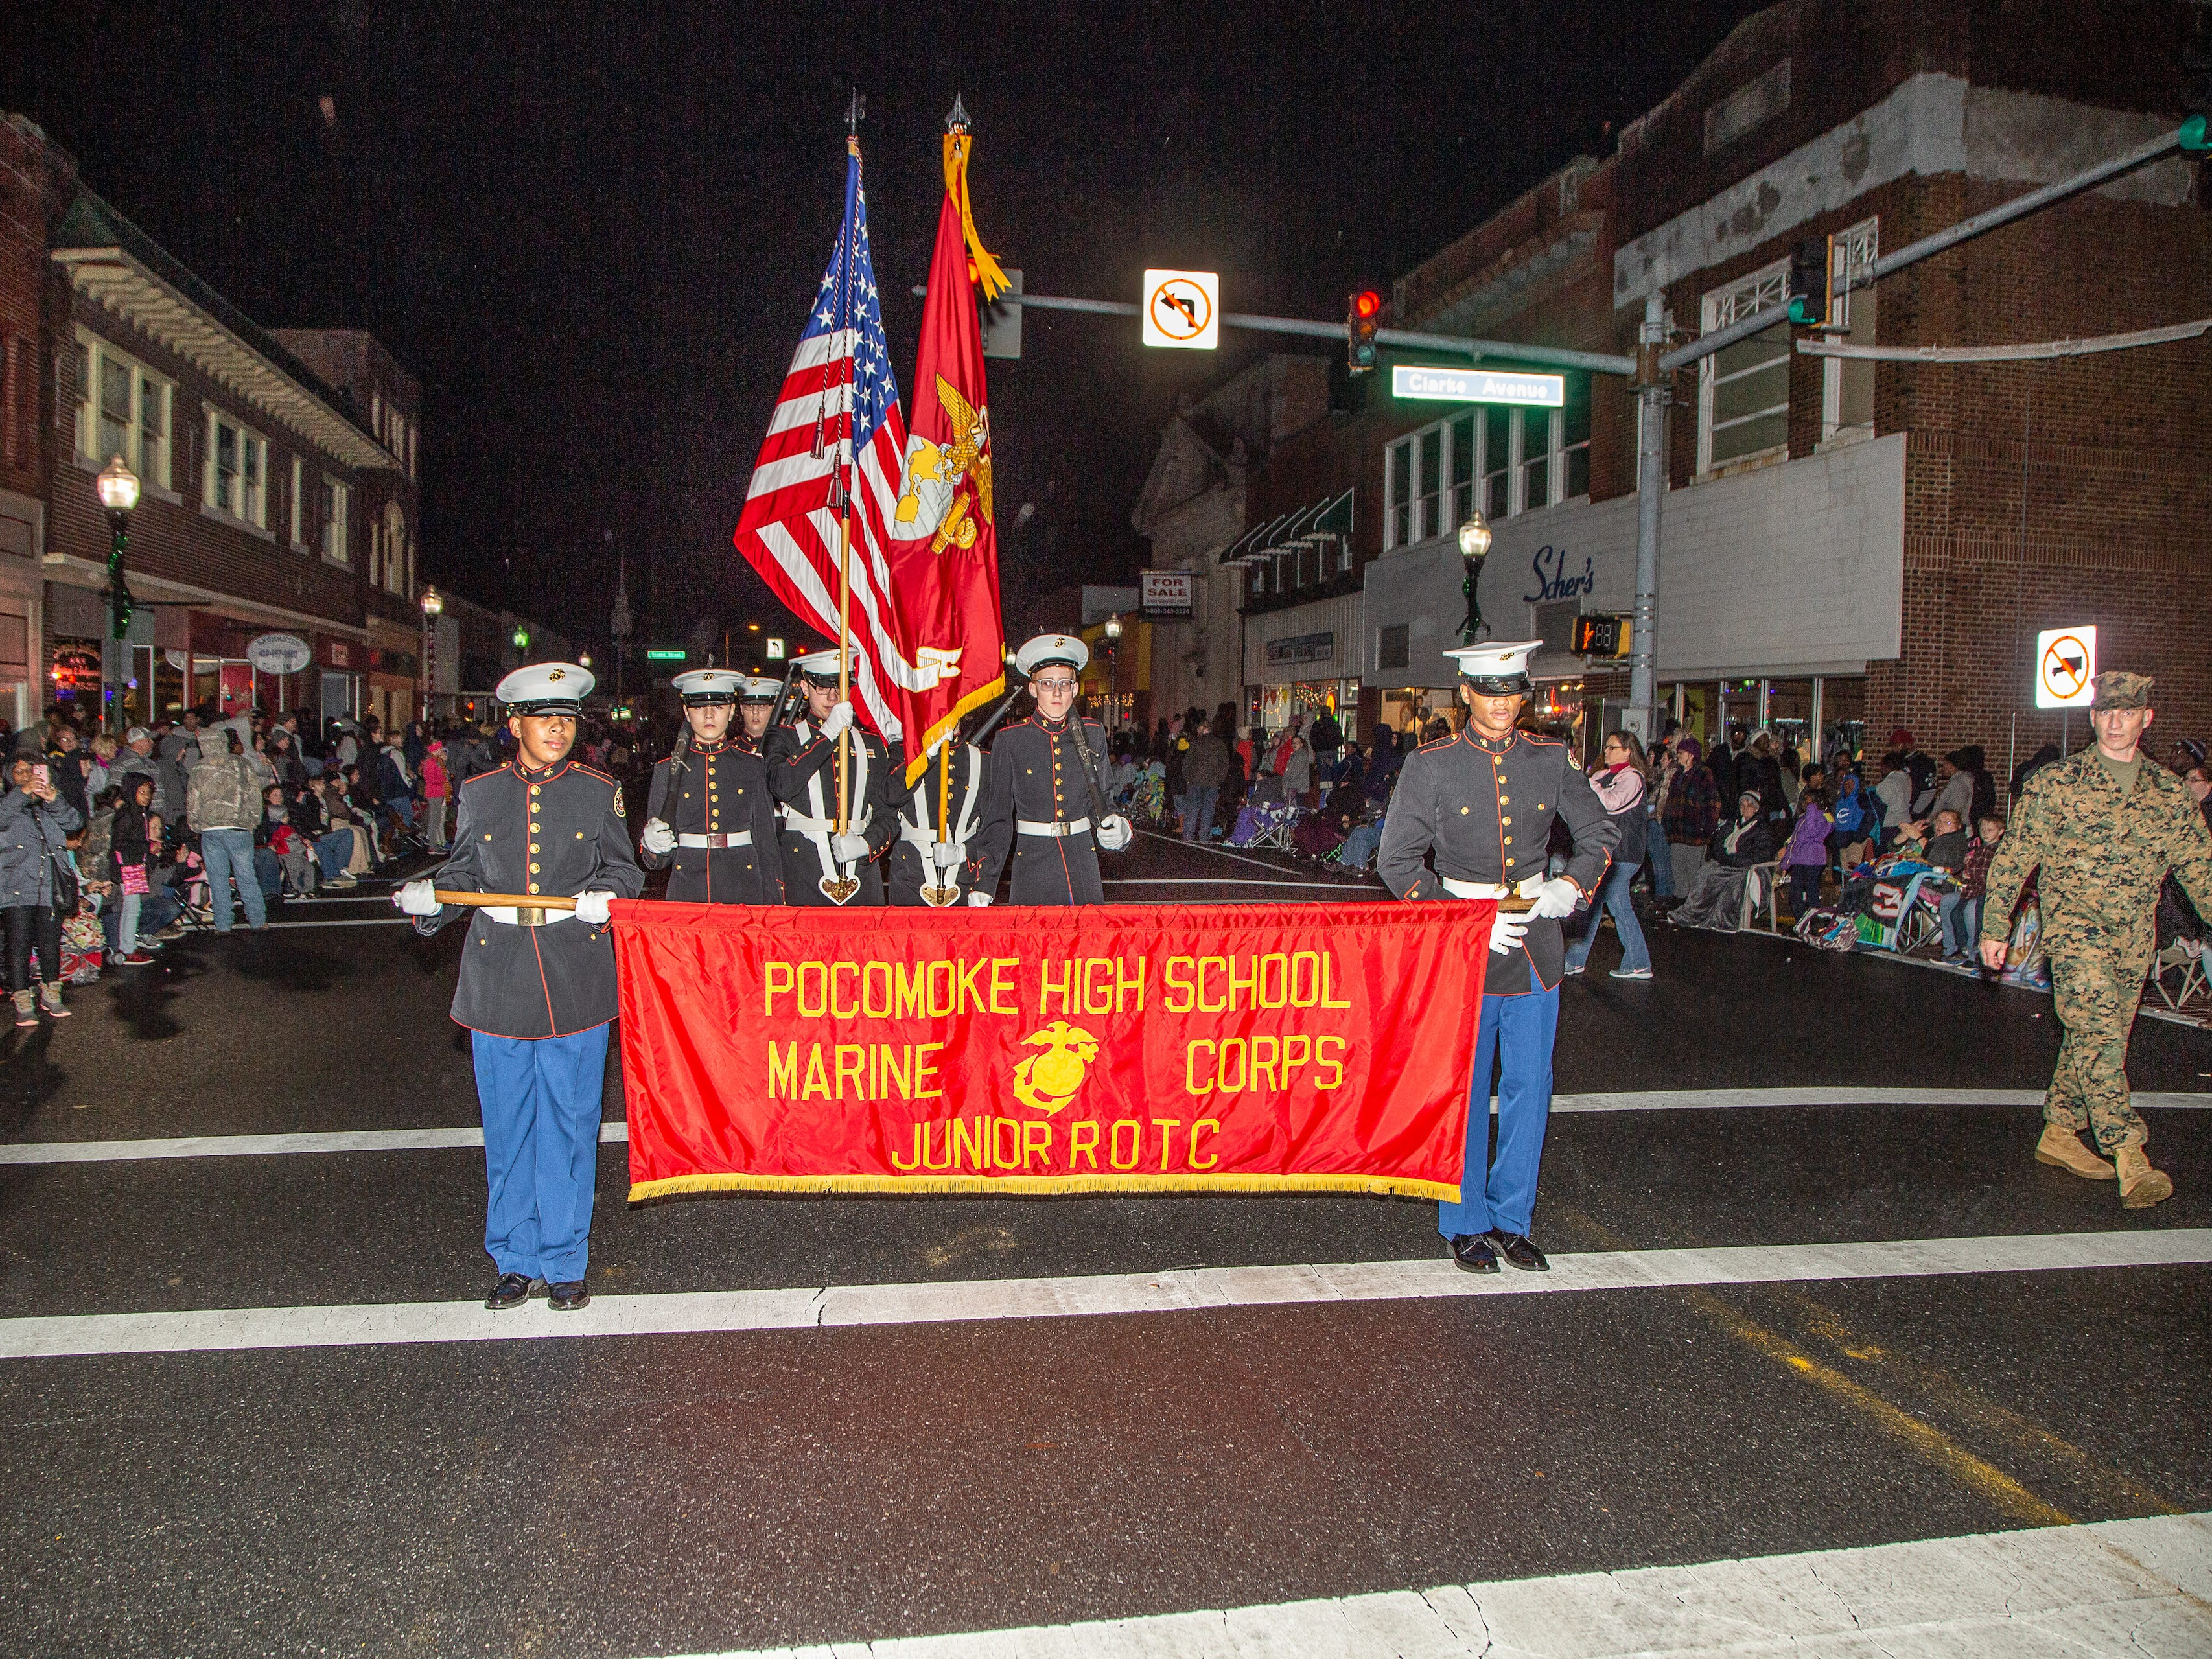 Pocomoke High School JROTC unit marches in the annual Christmas parade.